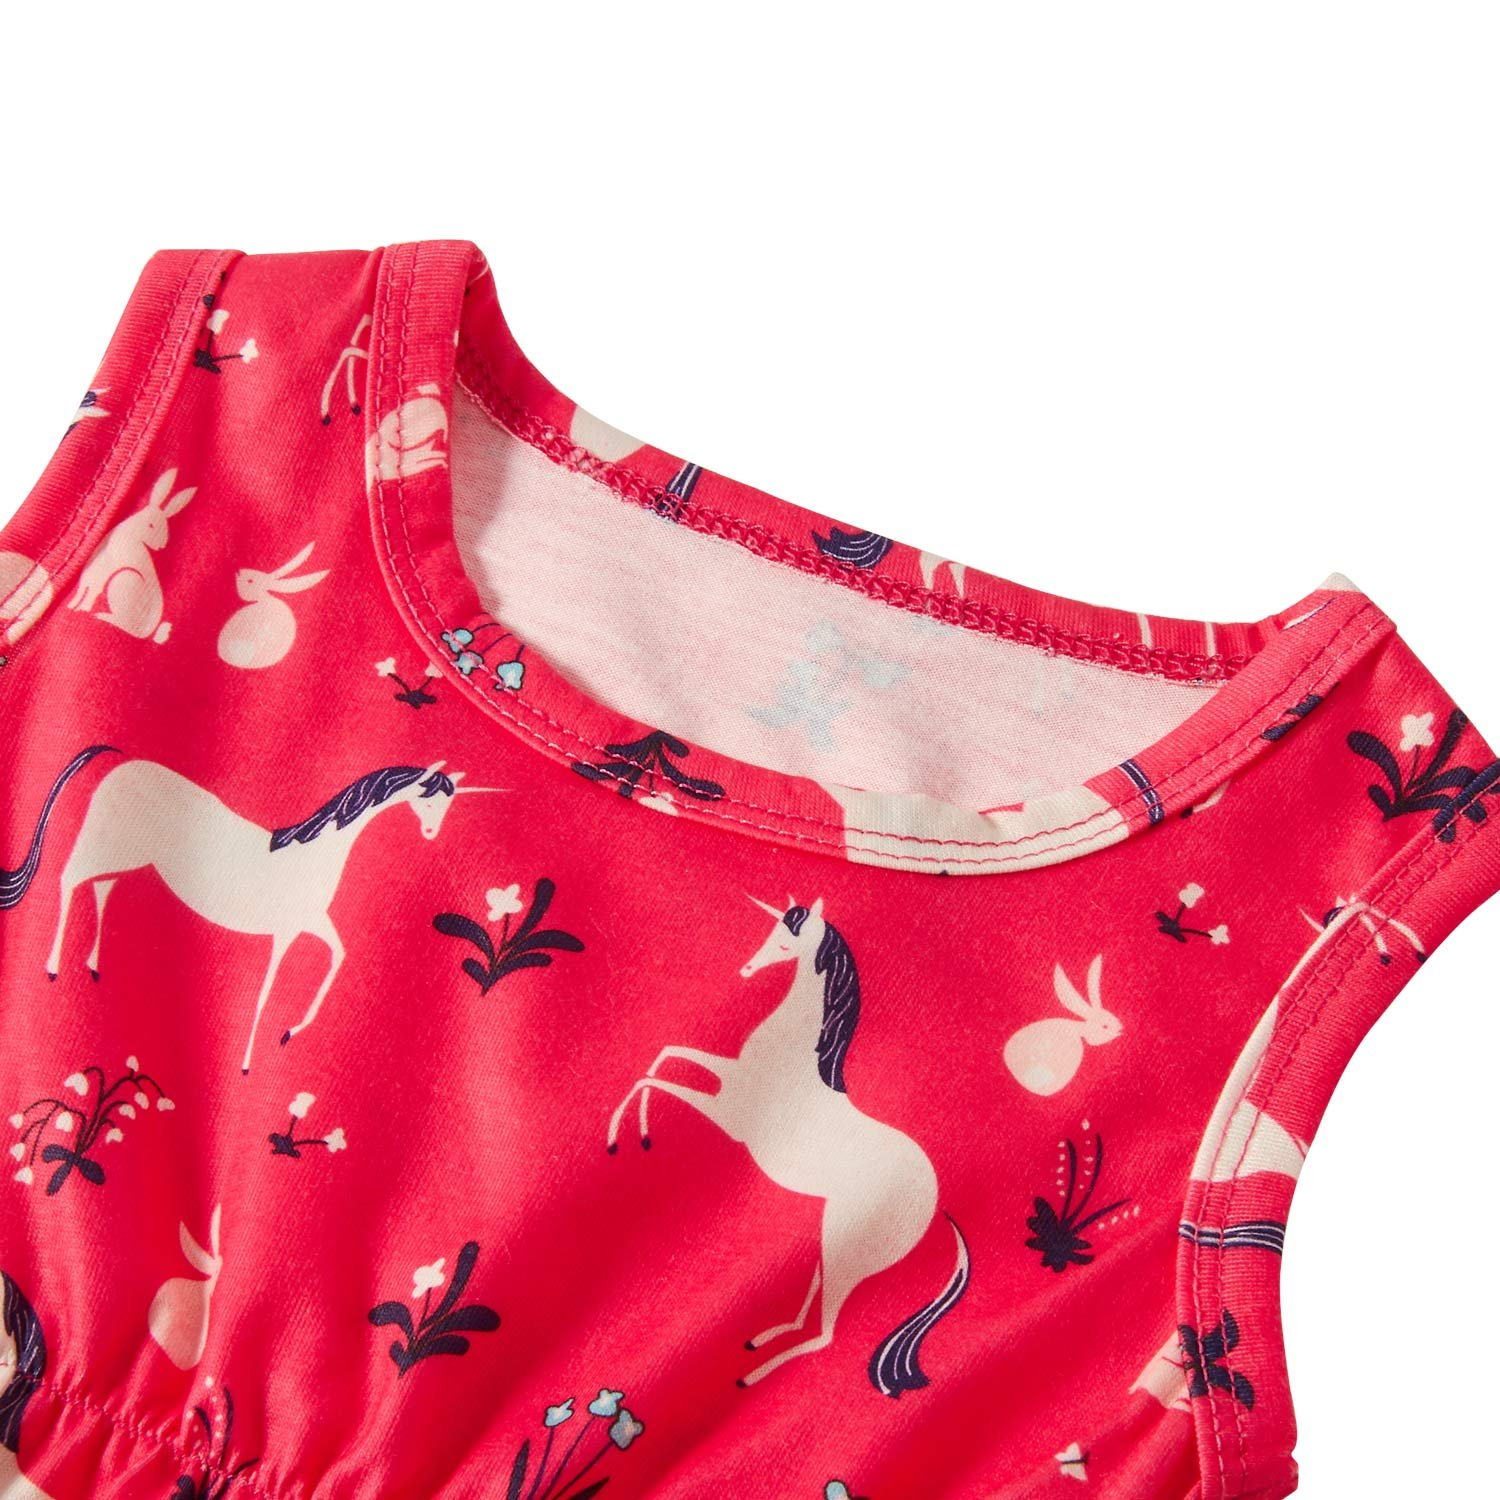 Leapparel Toddler Lovely Plant and Animal Print Jumpsuit Short Sleeve Romper Baby Girl Birthday Outfit Little Kids Clothes with Personal Headbrand,Horse,6-12 Months (Size 90)